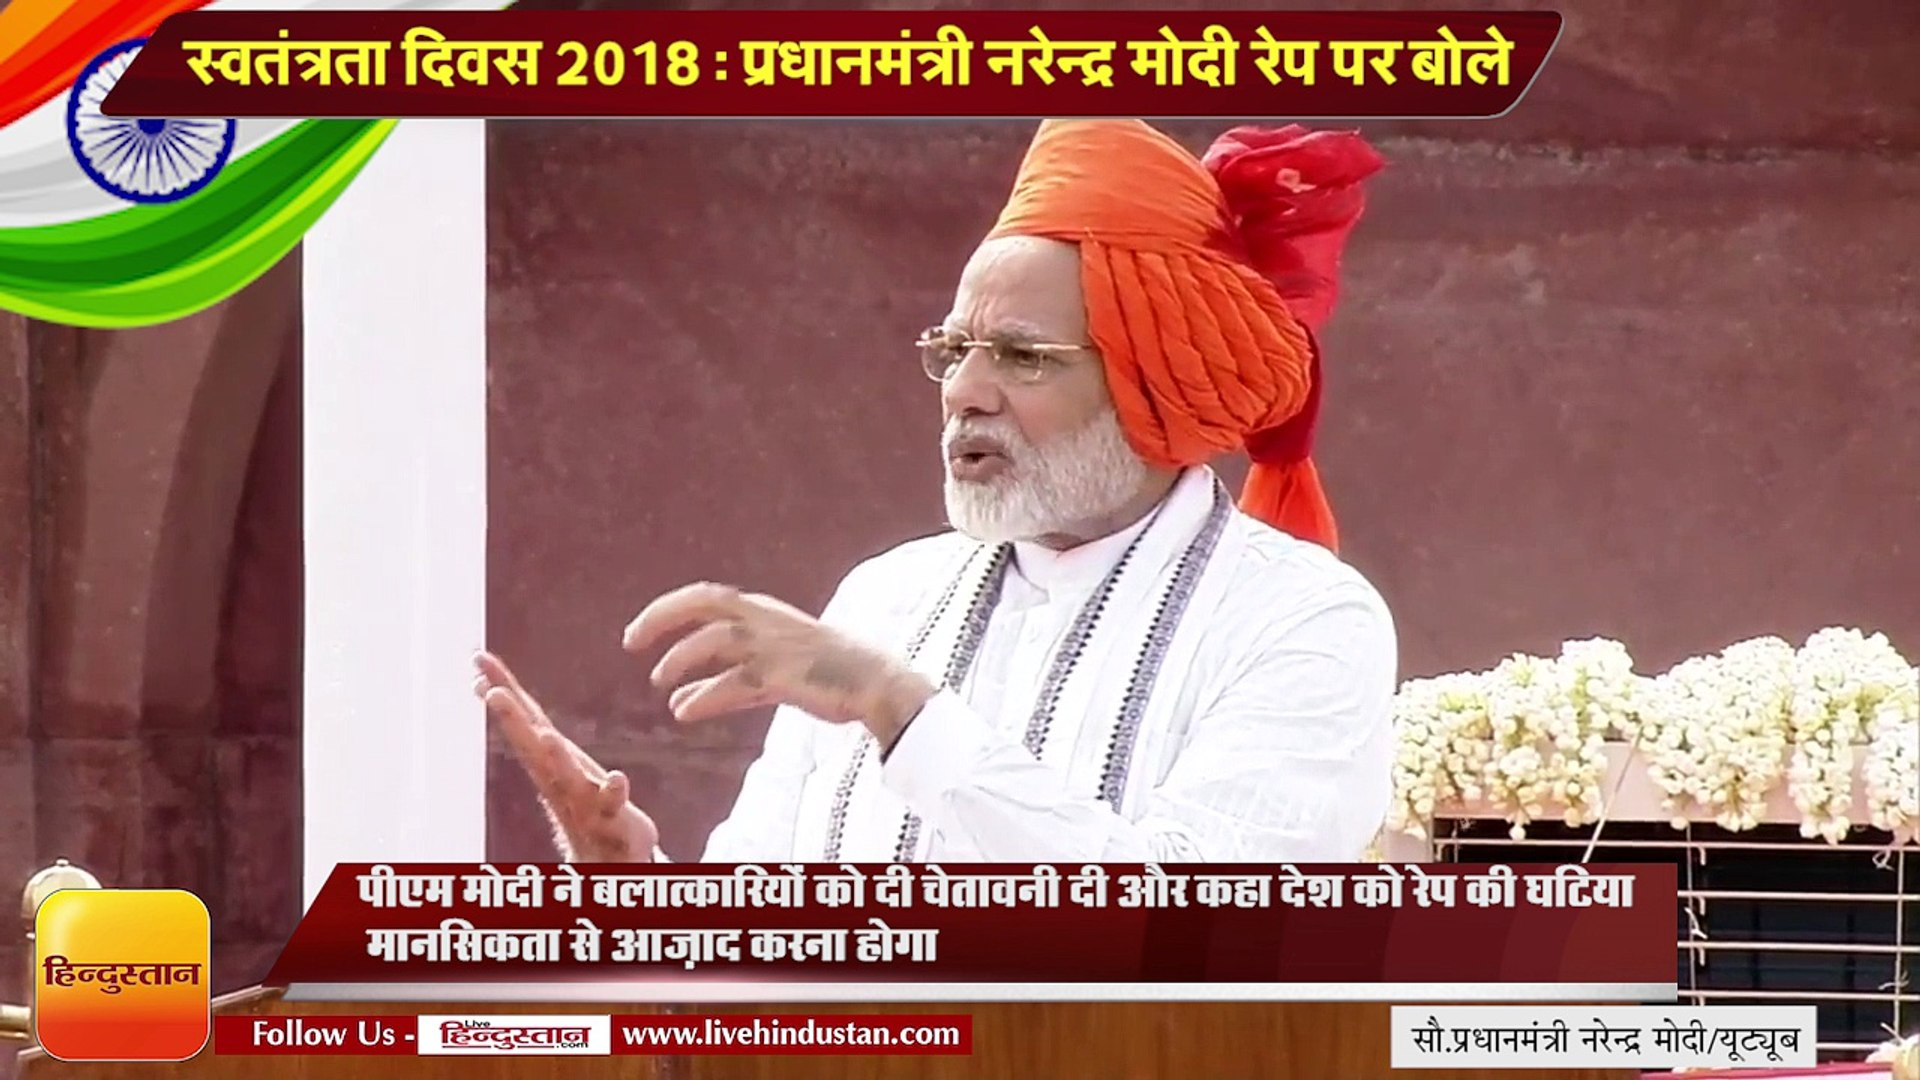 PM Modi at 72nd Independence Day II PM Modi warns to rapists on independence day Speech